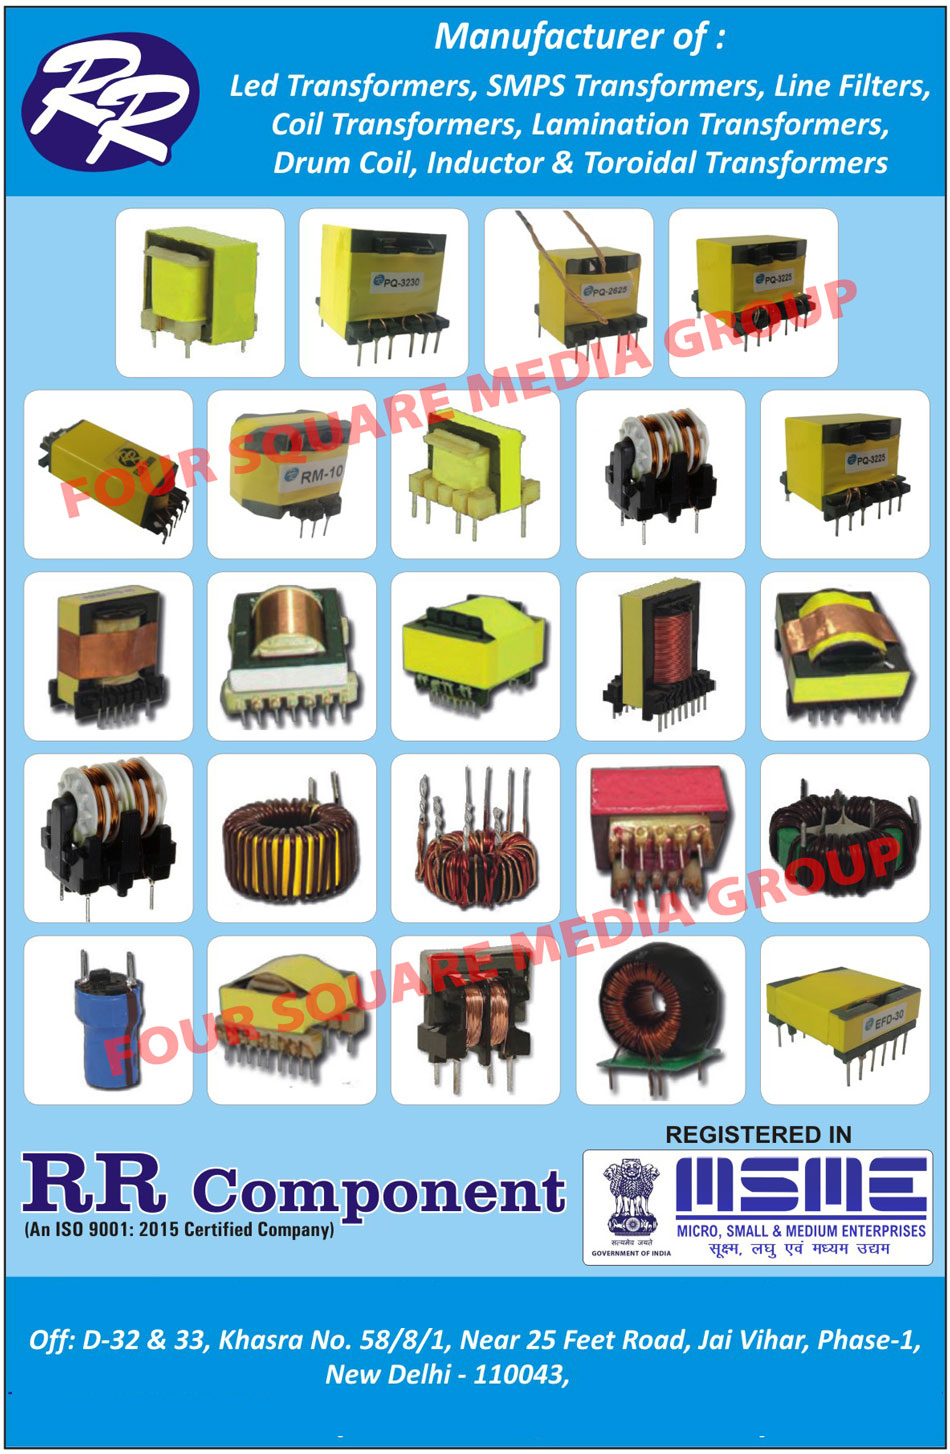 Transformers, Led Transformers, SMPS Transformers, Line Filter Chokes, Coil Transformers, Lamination Transformers, Drum Coils, Inductor Transformers, Toroidal Transformers, CCTV SMPS Adapters, Reverse Osmosis Adapters, Coil Inductors, Inductor Transformers